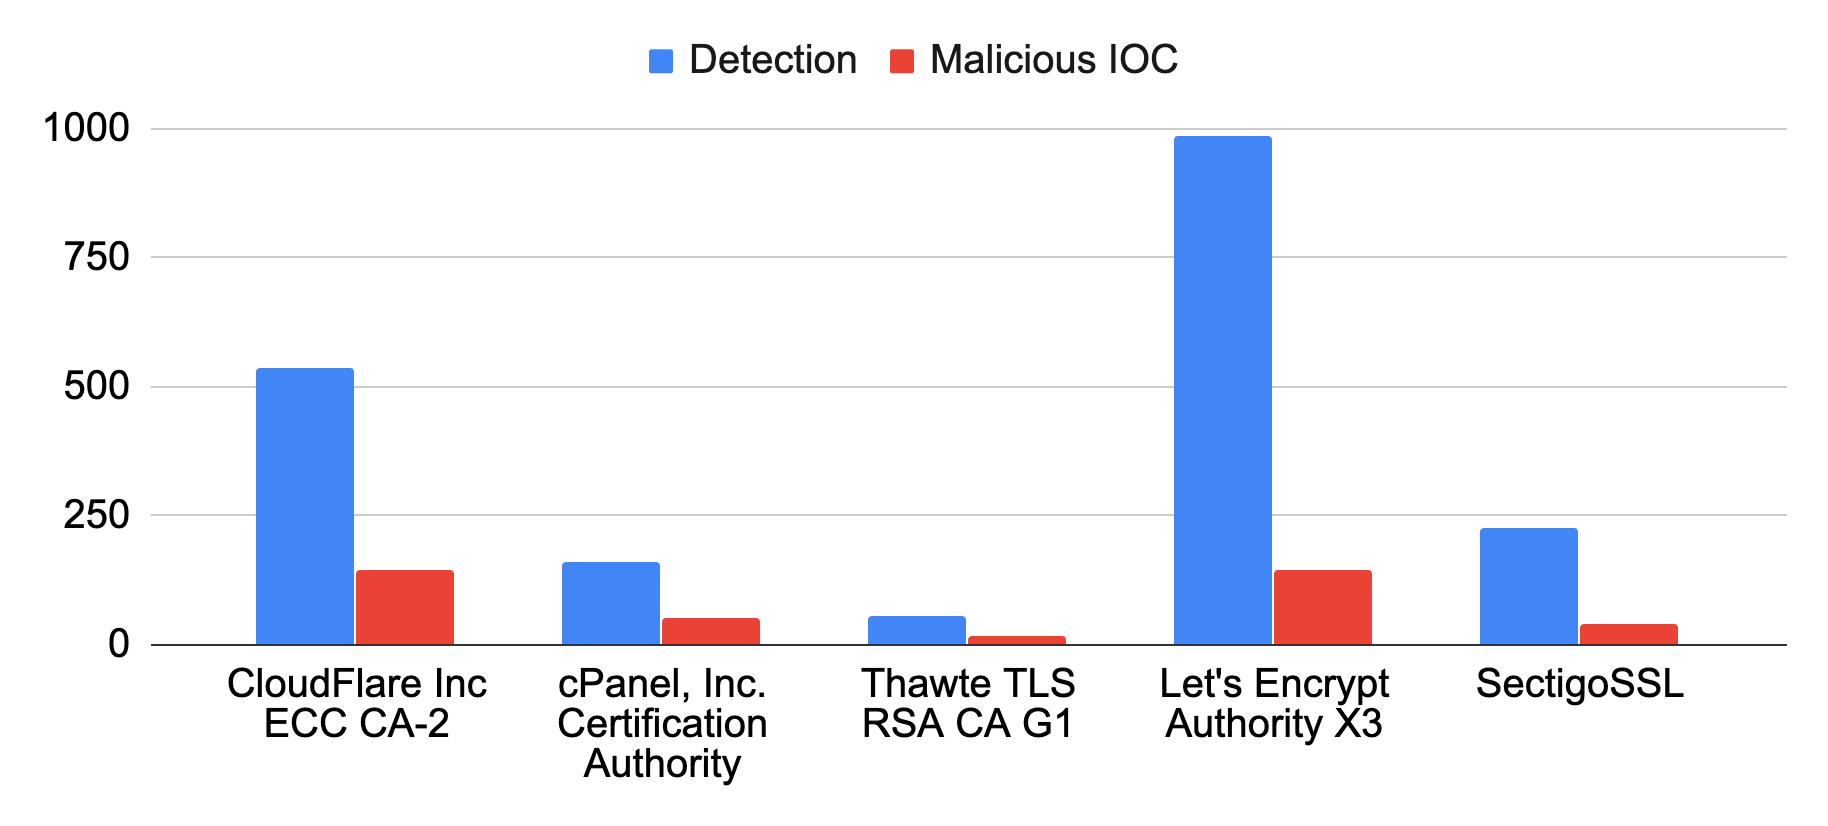 This graph shows the top 5 certificate authorities most abused by cybersquatting in December 2019, this time in terms of squatting detected (blue bars) and malicious IOC (red bars)